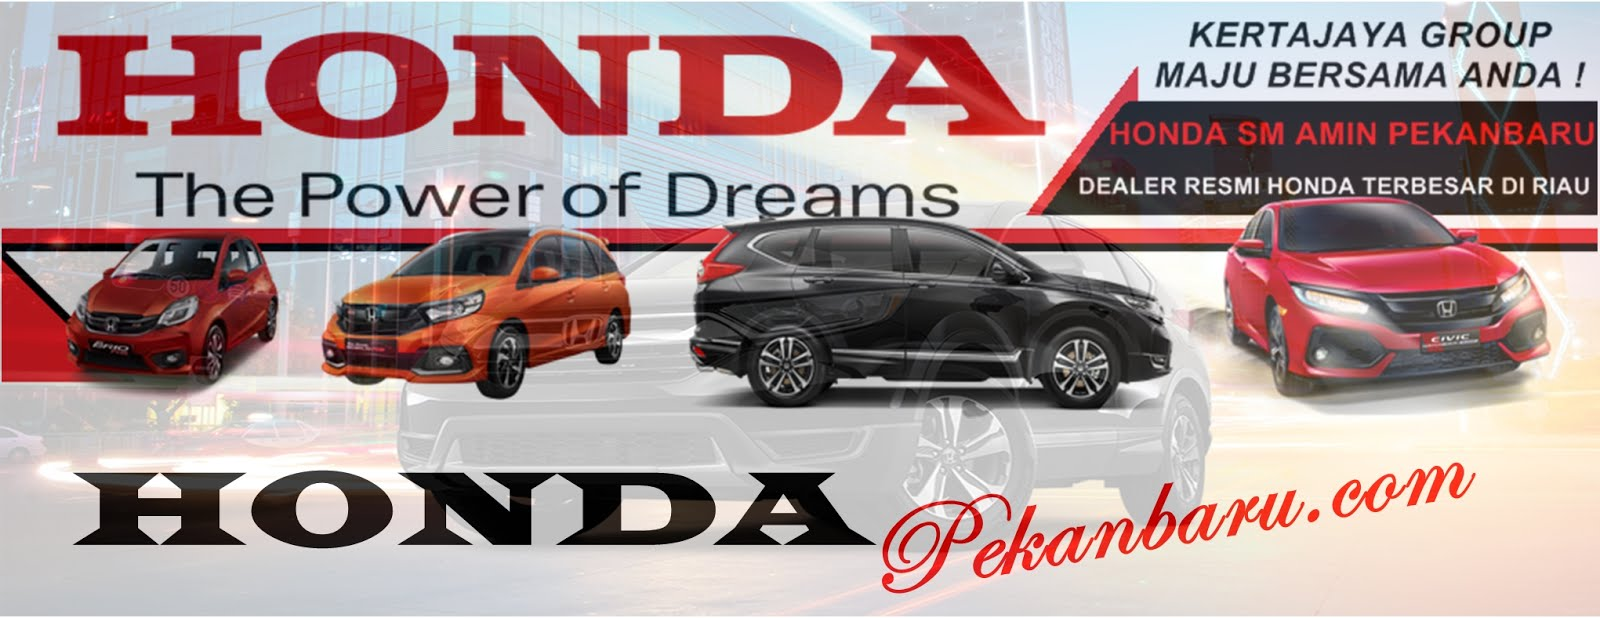 Harga, Kredit, Honda, Brio, Jazz, HRV, City, Civic Turbo, CRV, BRV, Pekanbaru,Riau September 2018